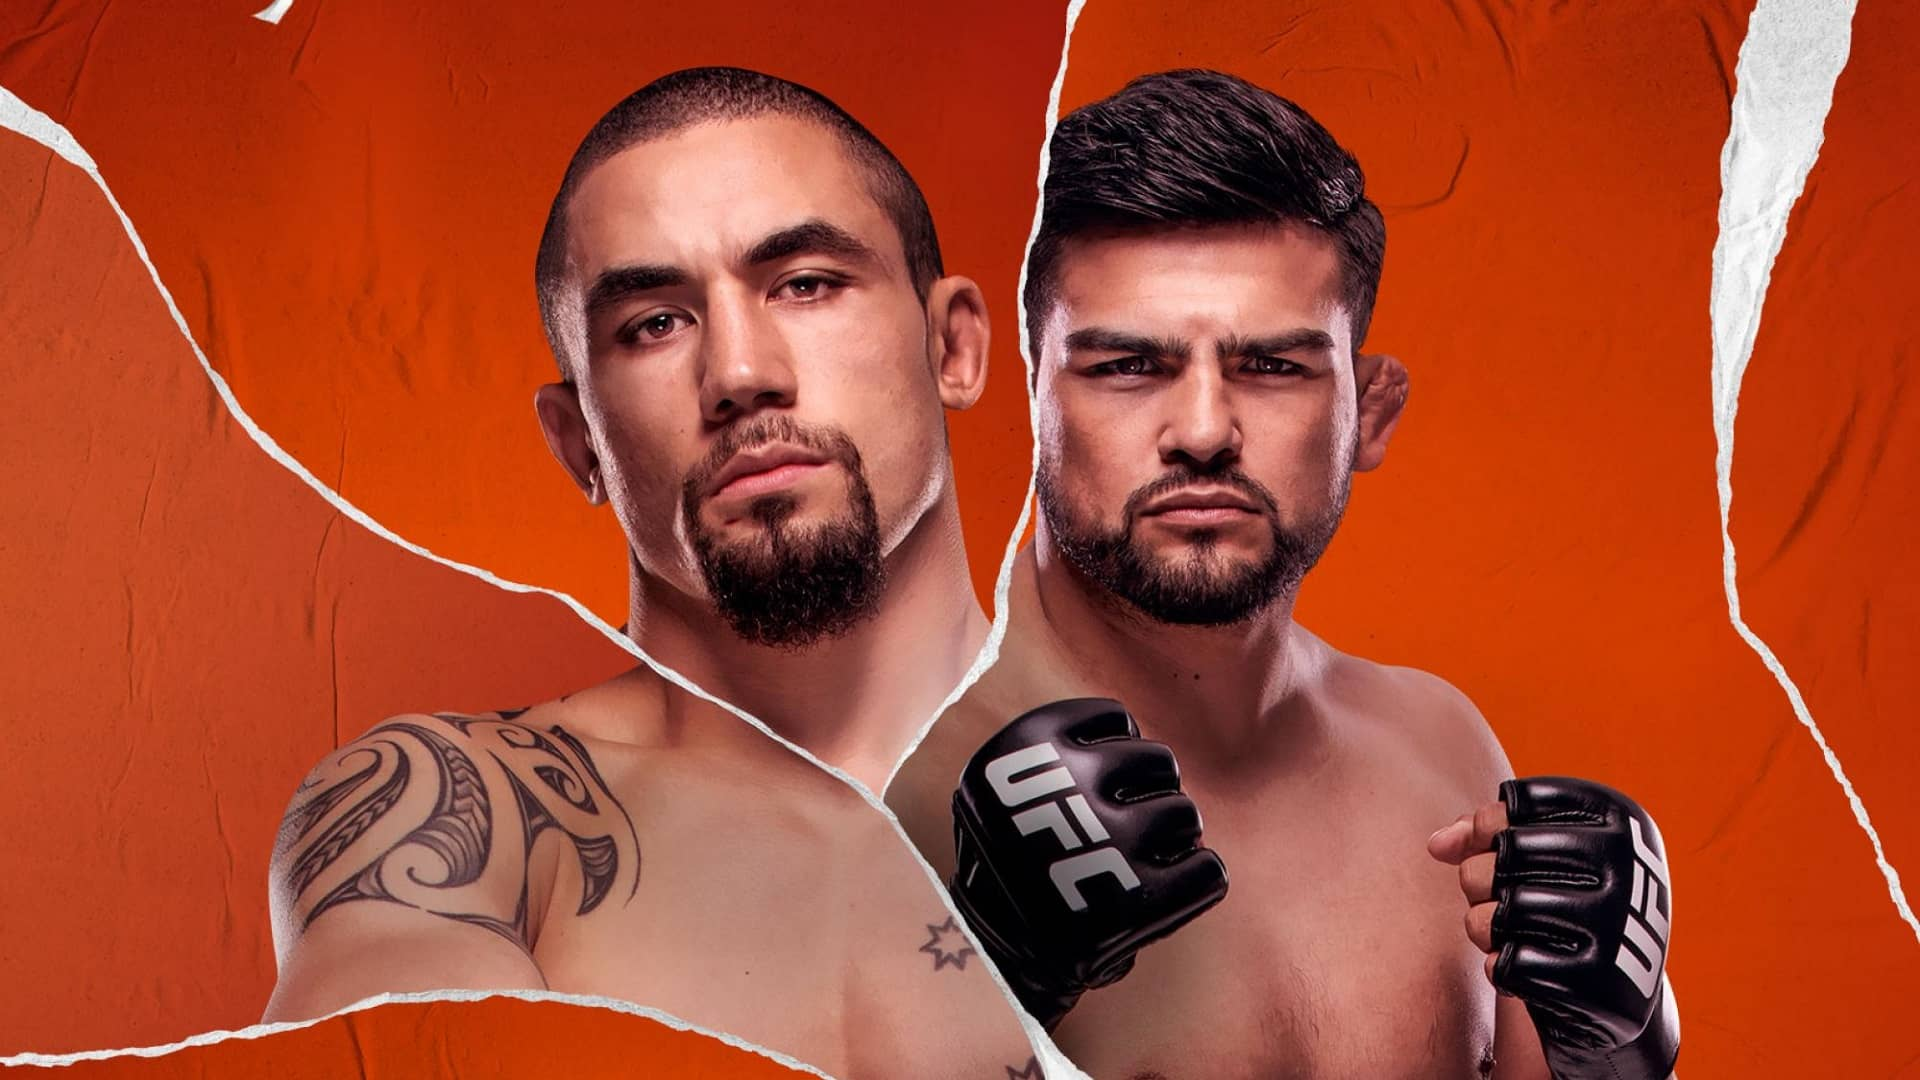 https://lockerroom.in/blog/view/UFC-Fight-Night-Whittaker-Gastelum-India